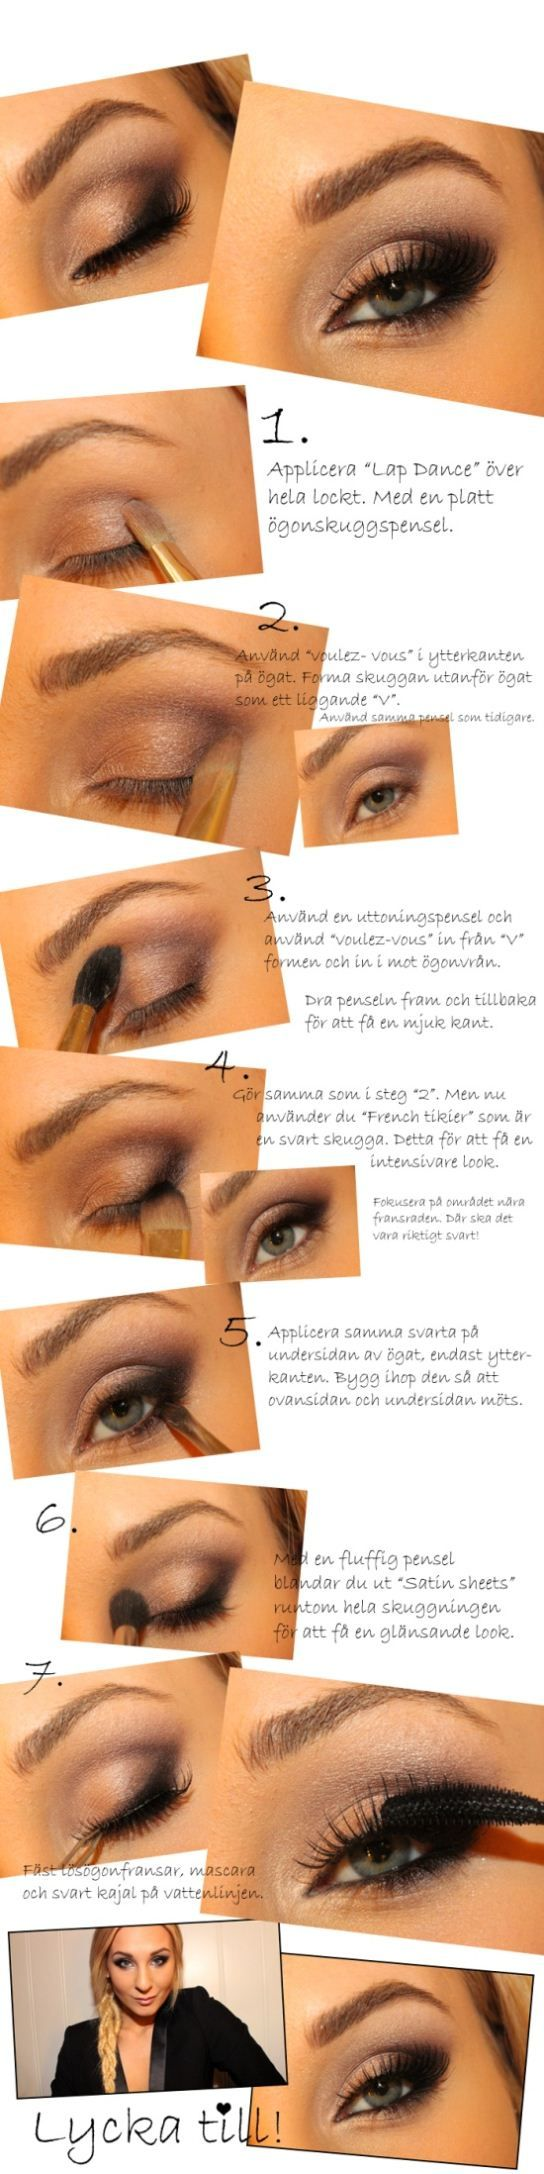 How to get this look with the Two-Faced eyeshadow pallet Boudior. Instructions are in German or swedish (maybe? whatevs) but the names of the colors are in English.